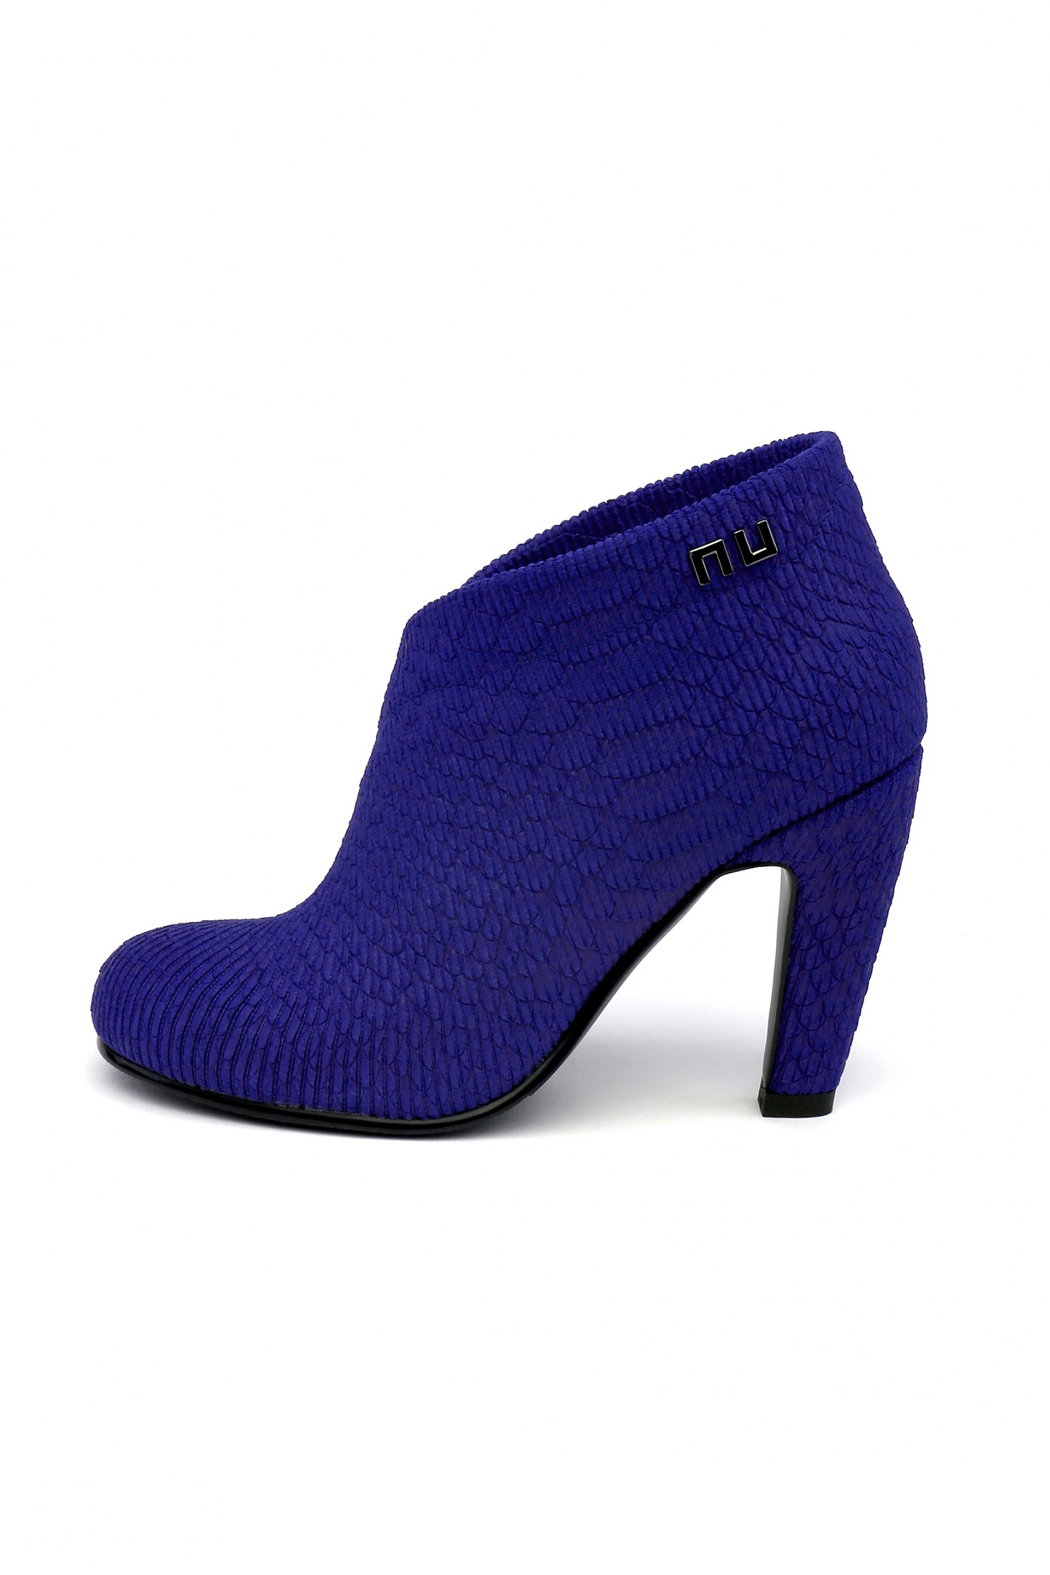 United Nude Fold-Hi Booties - Front Cropped Image